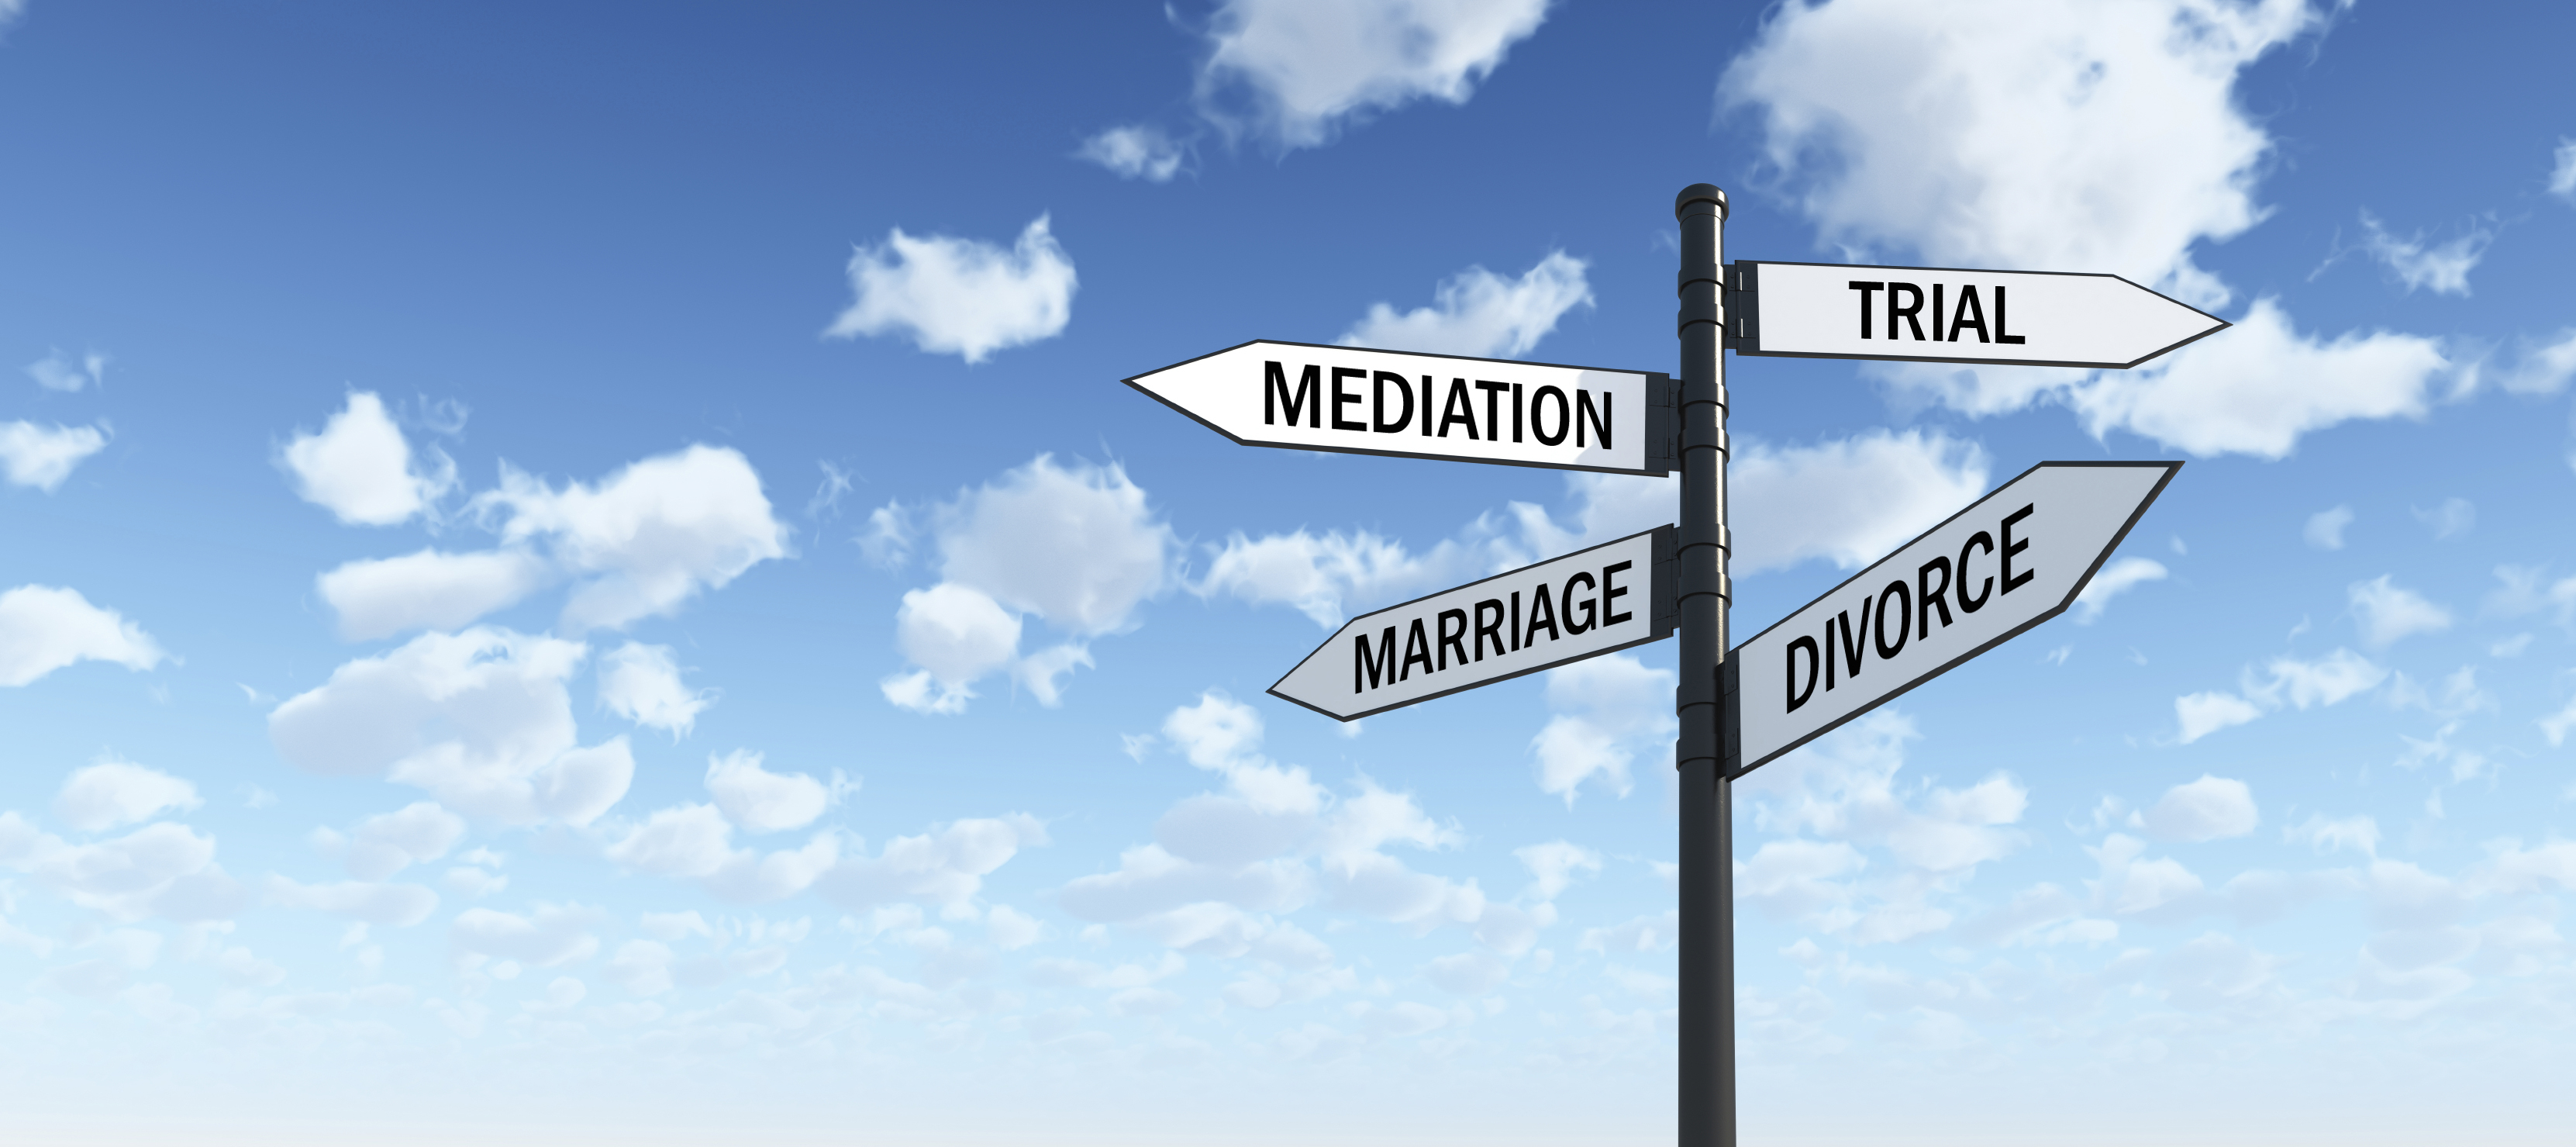 divorce attorney in ny, divorce lawyer in ny, divorce lawyers in nyc, divorce attorneys in nyc, ny divorce attorney, ny divorce lawyer